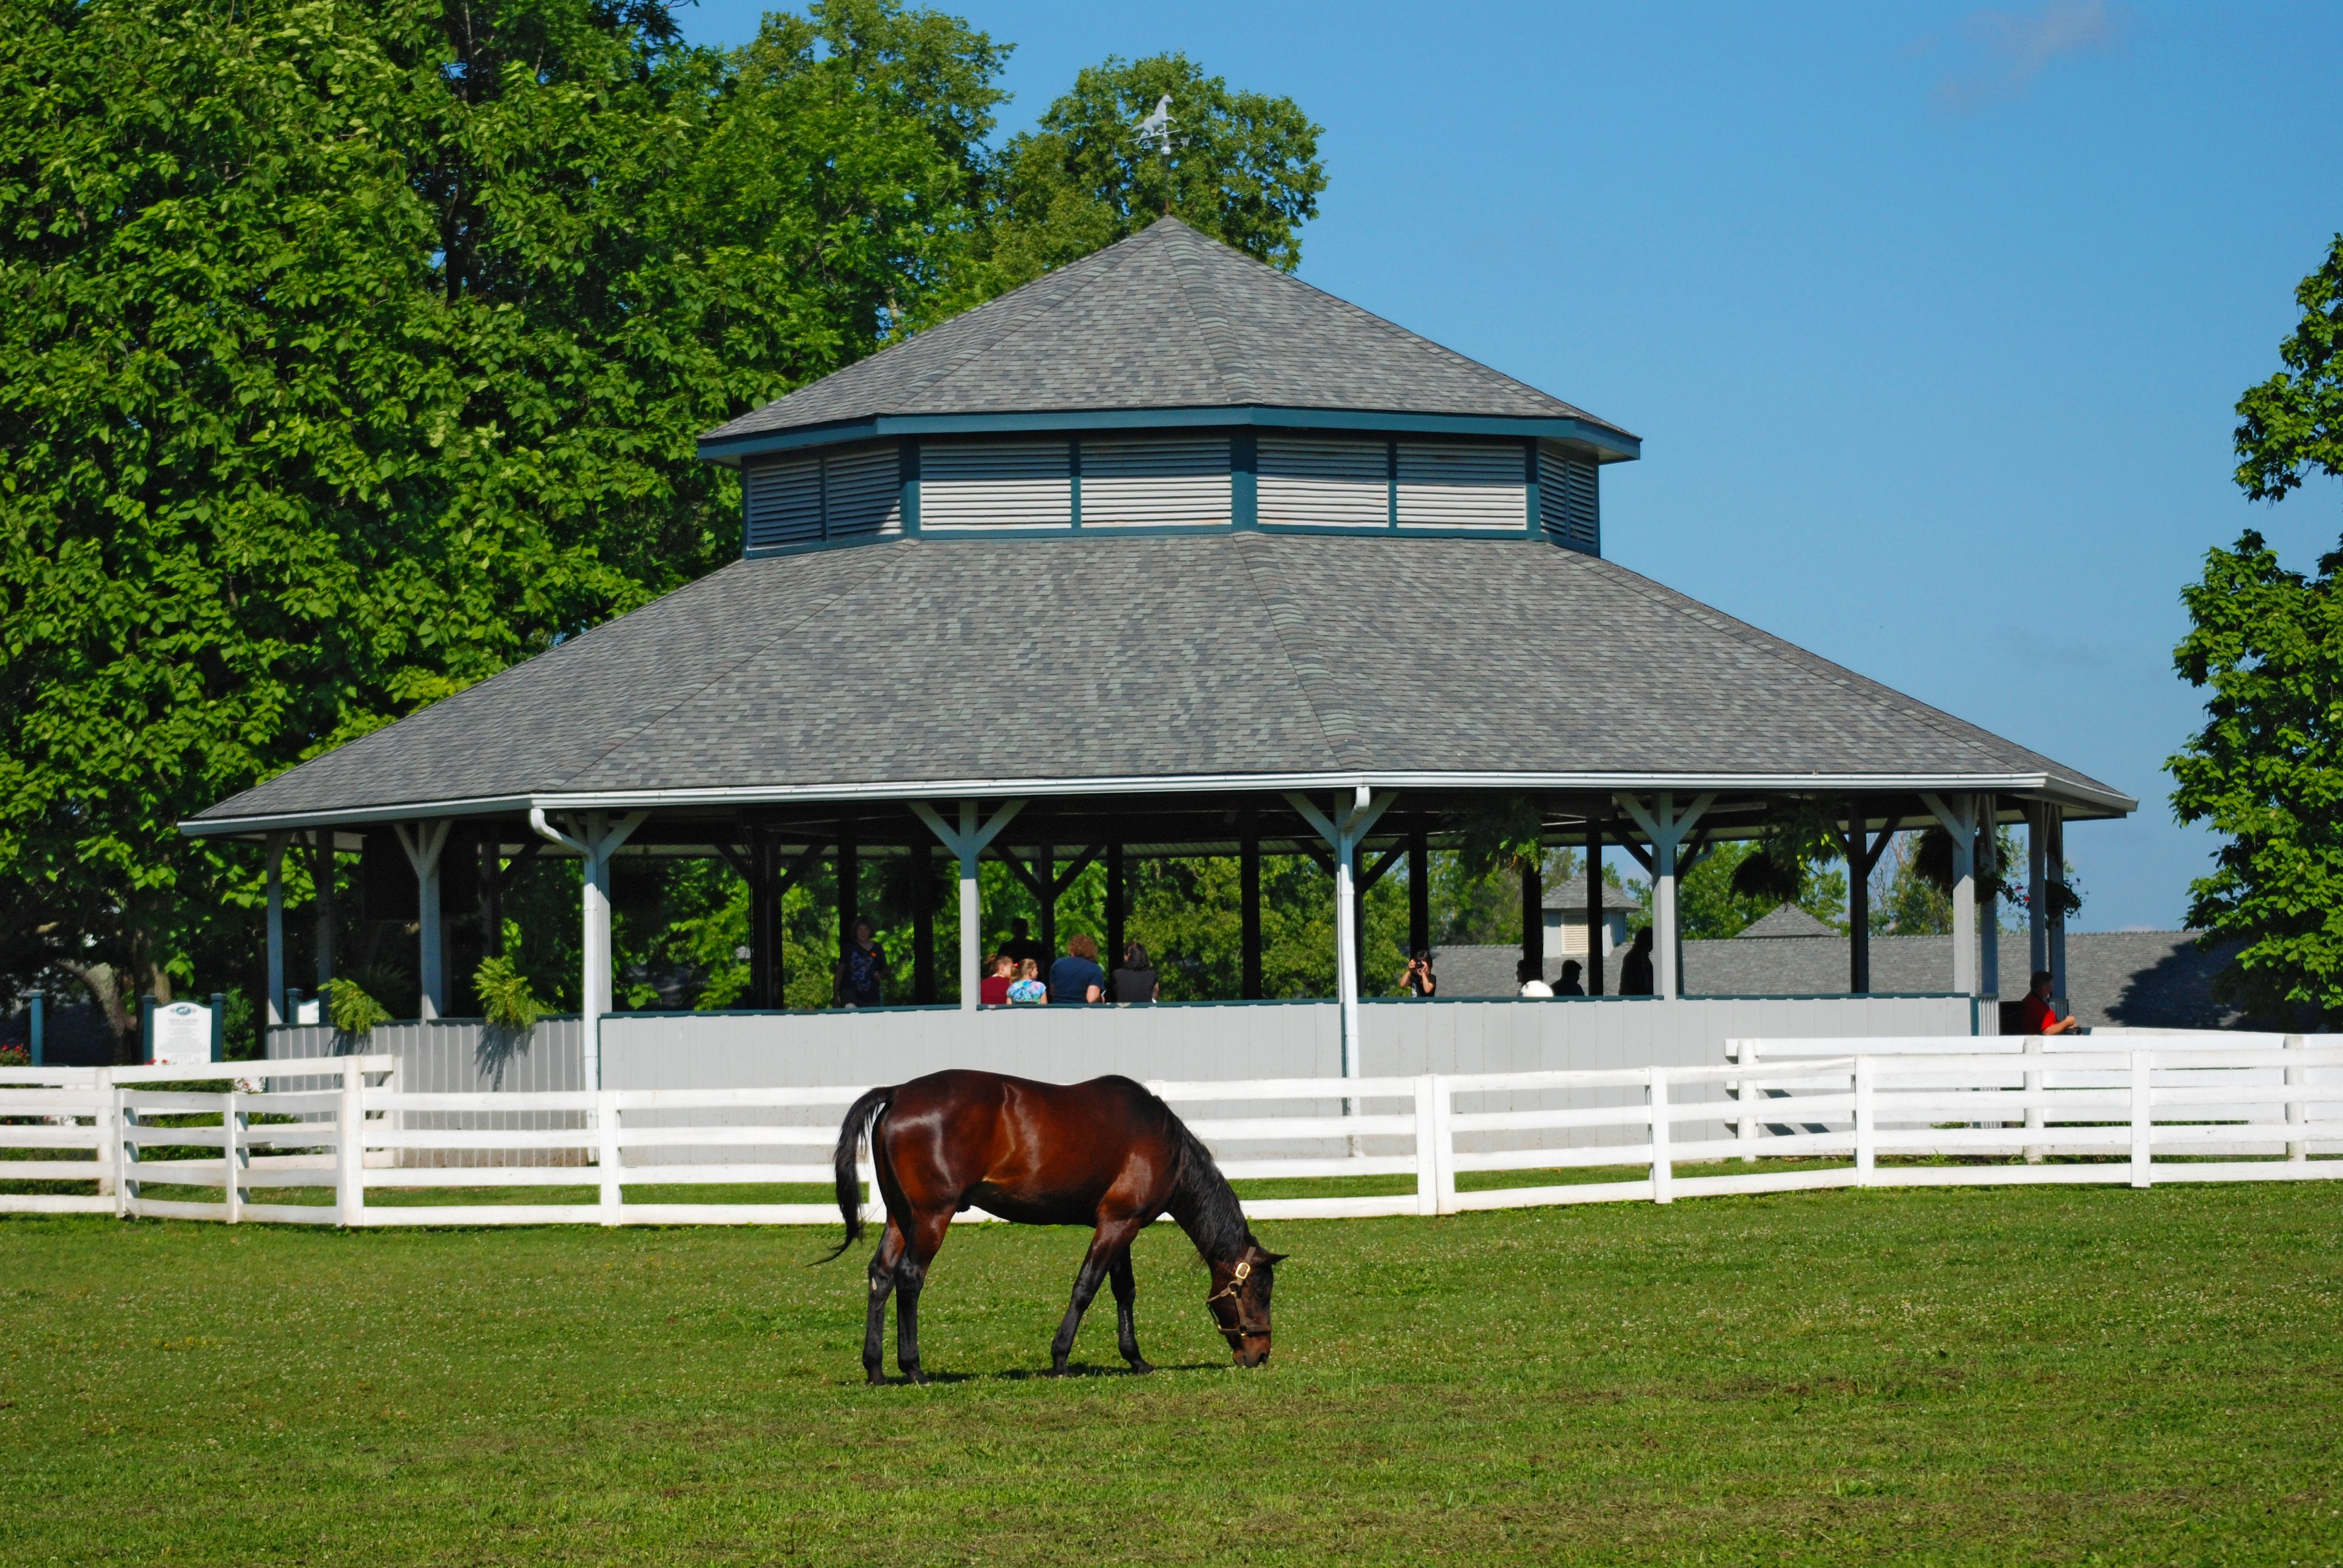 Scenes from The Kentucky Horse Park. (Photos courtesy of The Kentucky Horse Park)